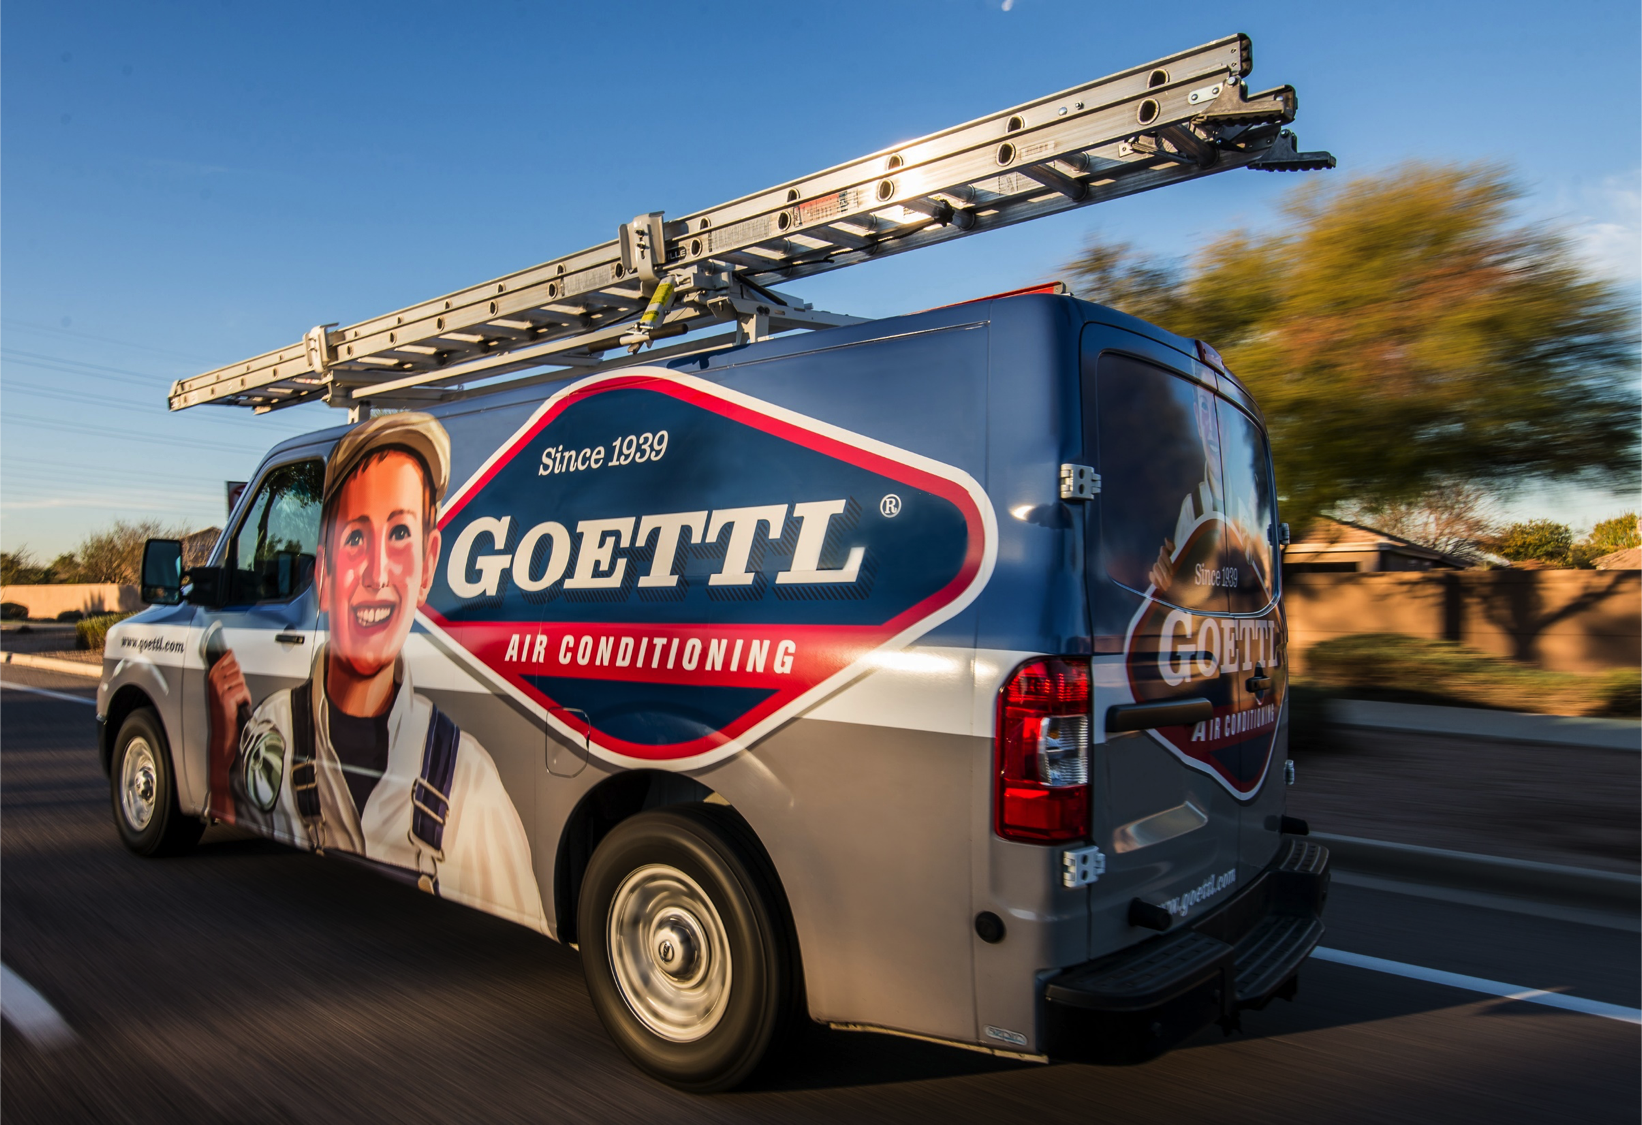 Goettl Air Conditioning 2551 N Dragoon St Ste 151  Tucson  Az 85745